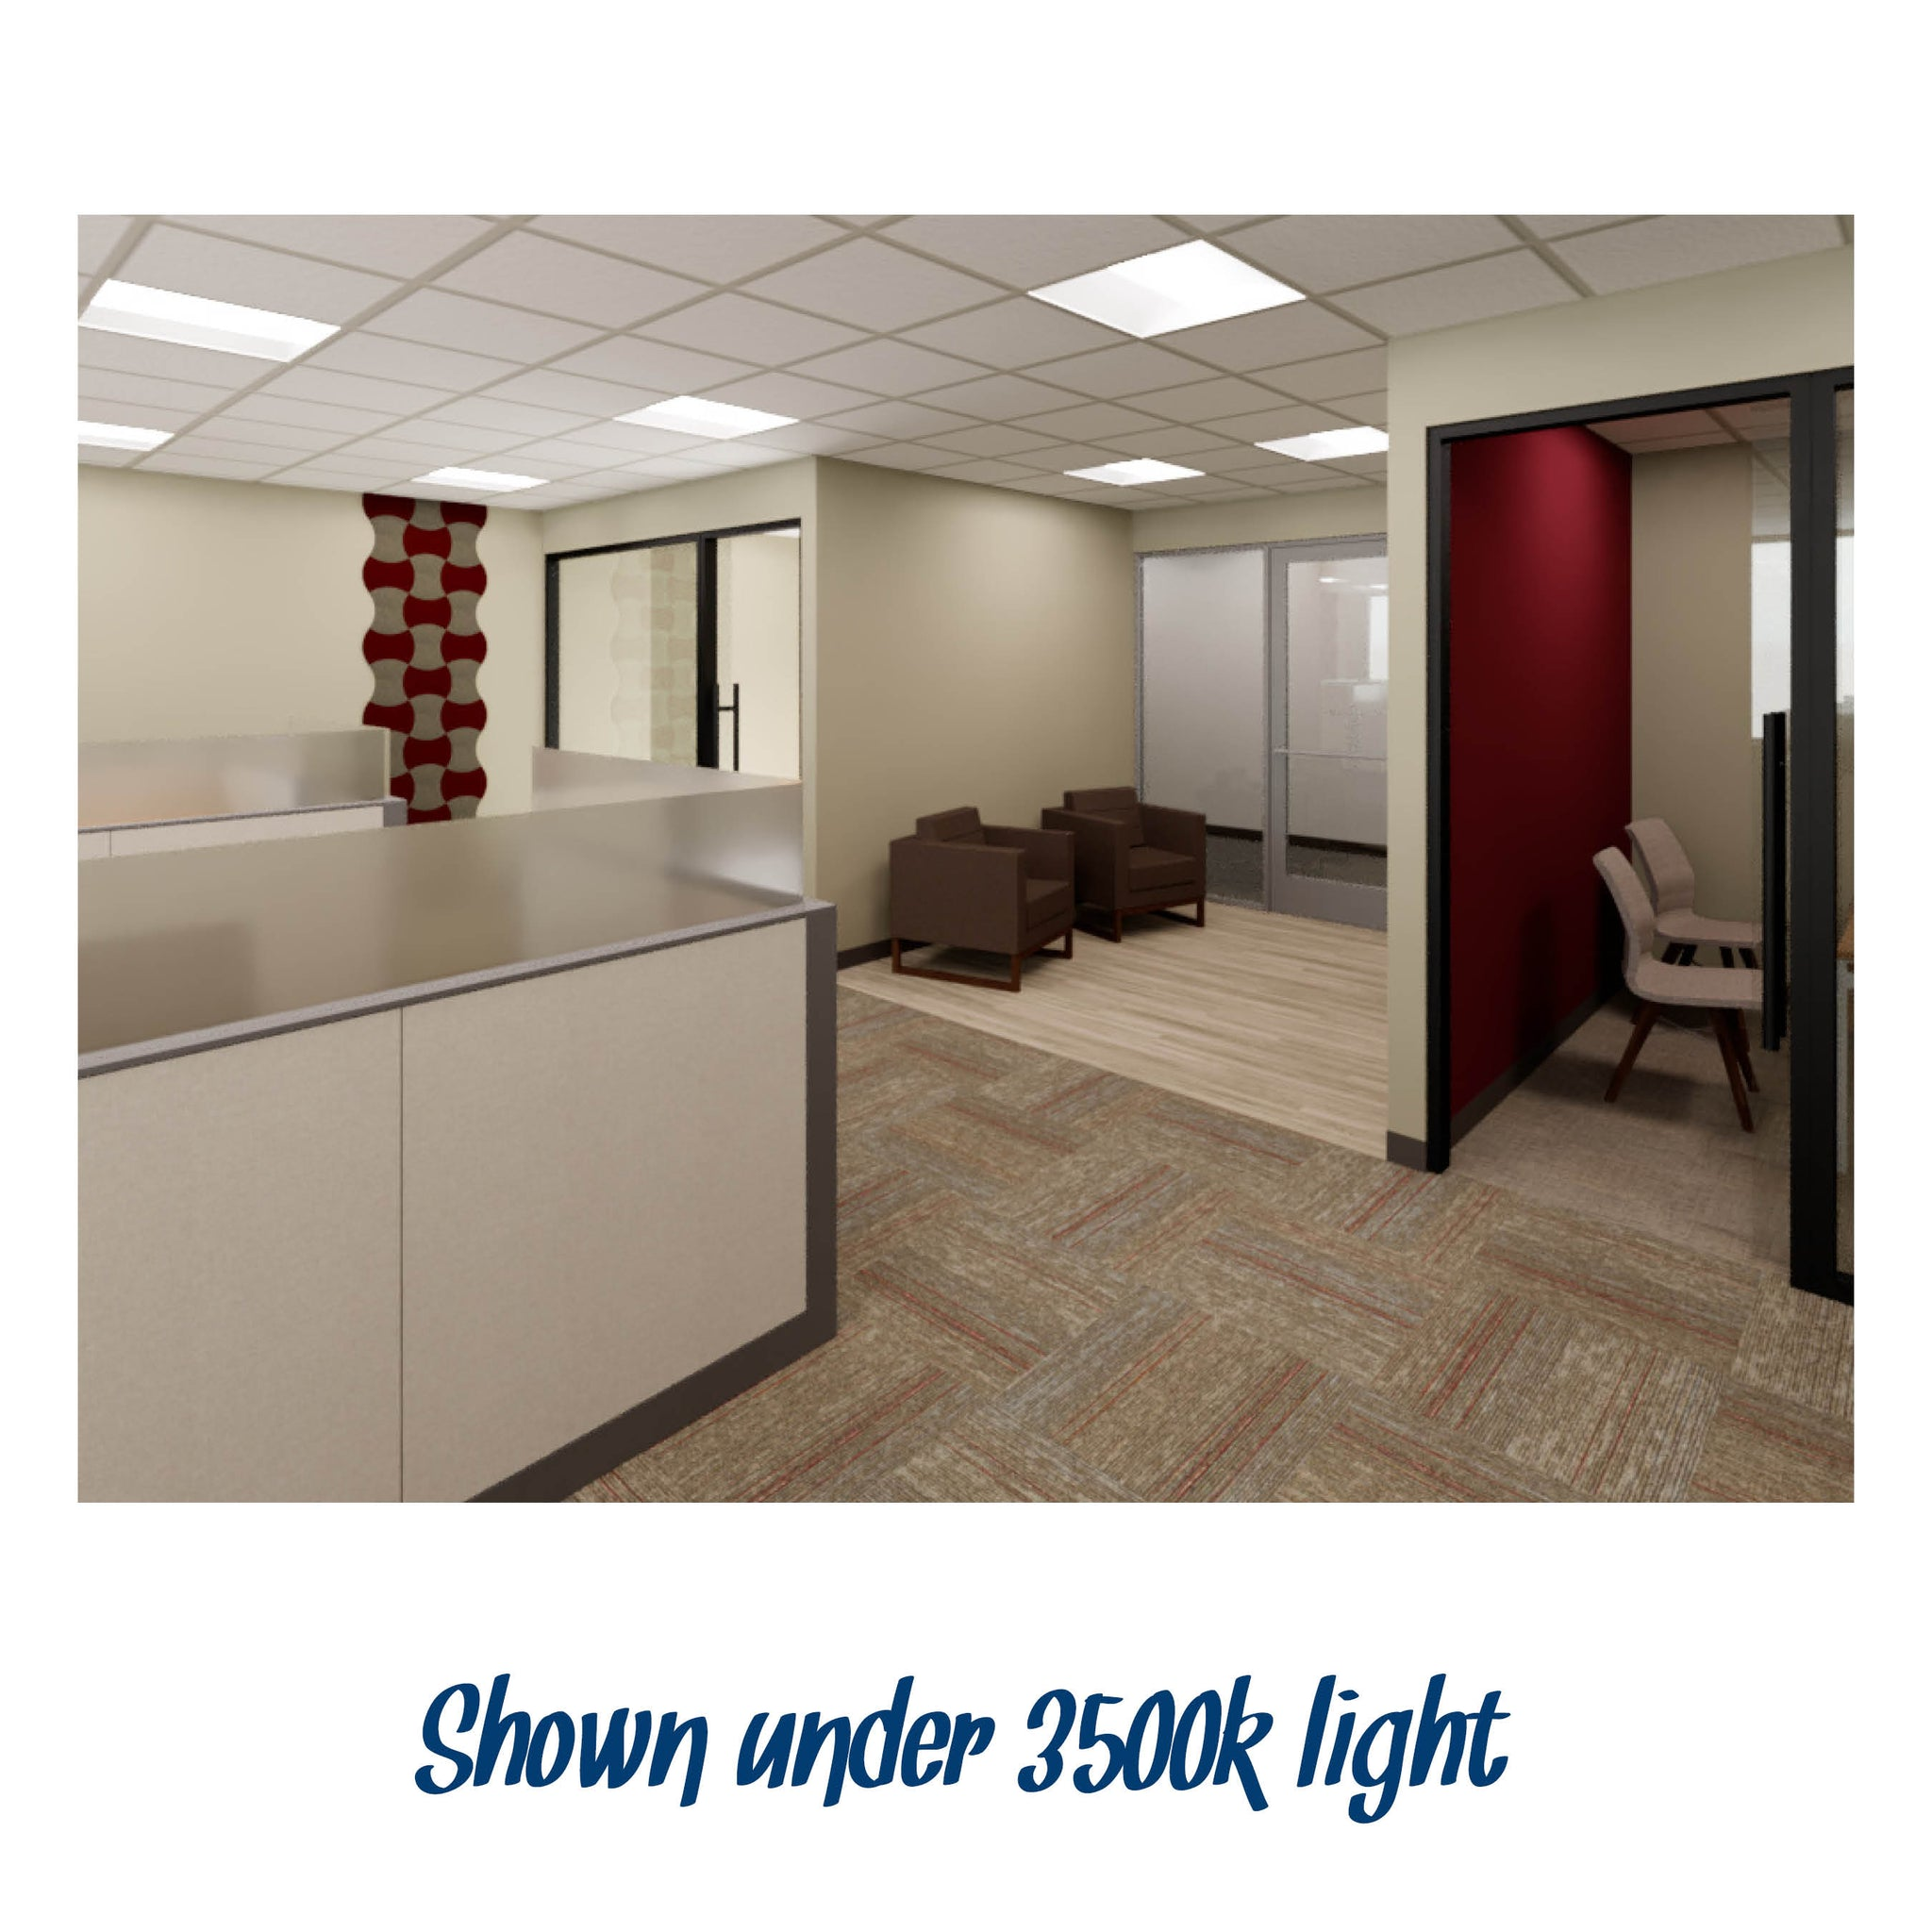 General Office Level 1 Warm Palette with Light Accent #3 Finish Palette